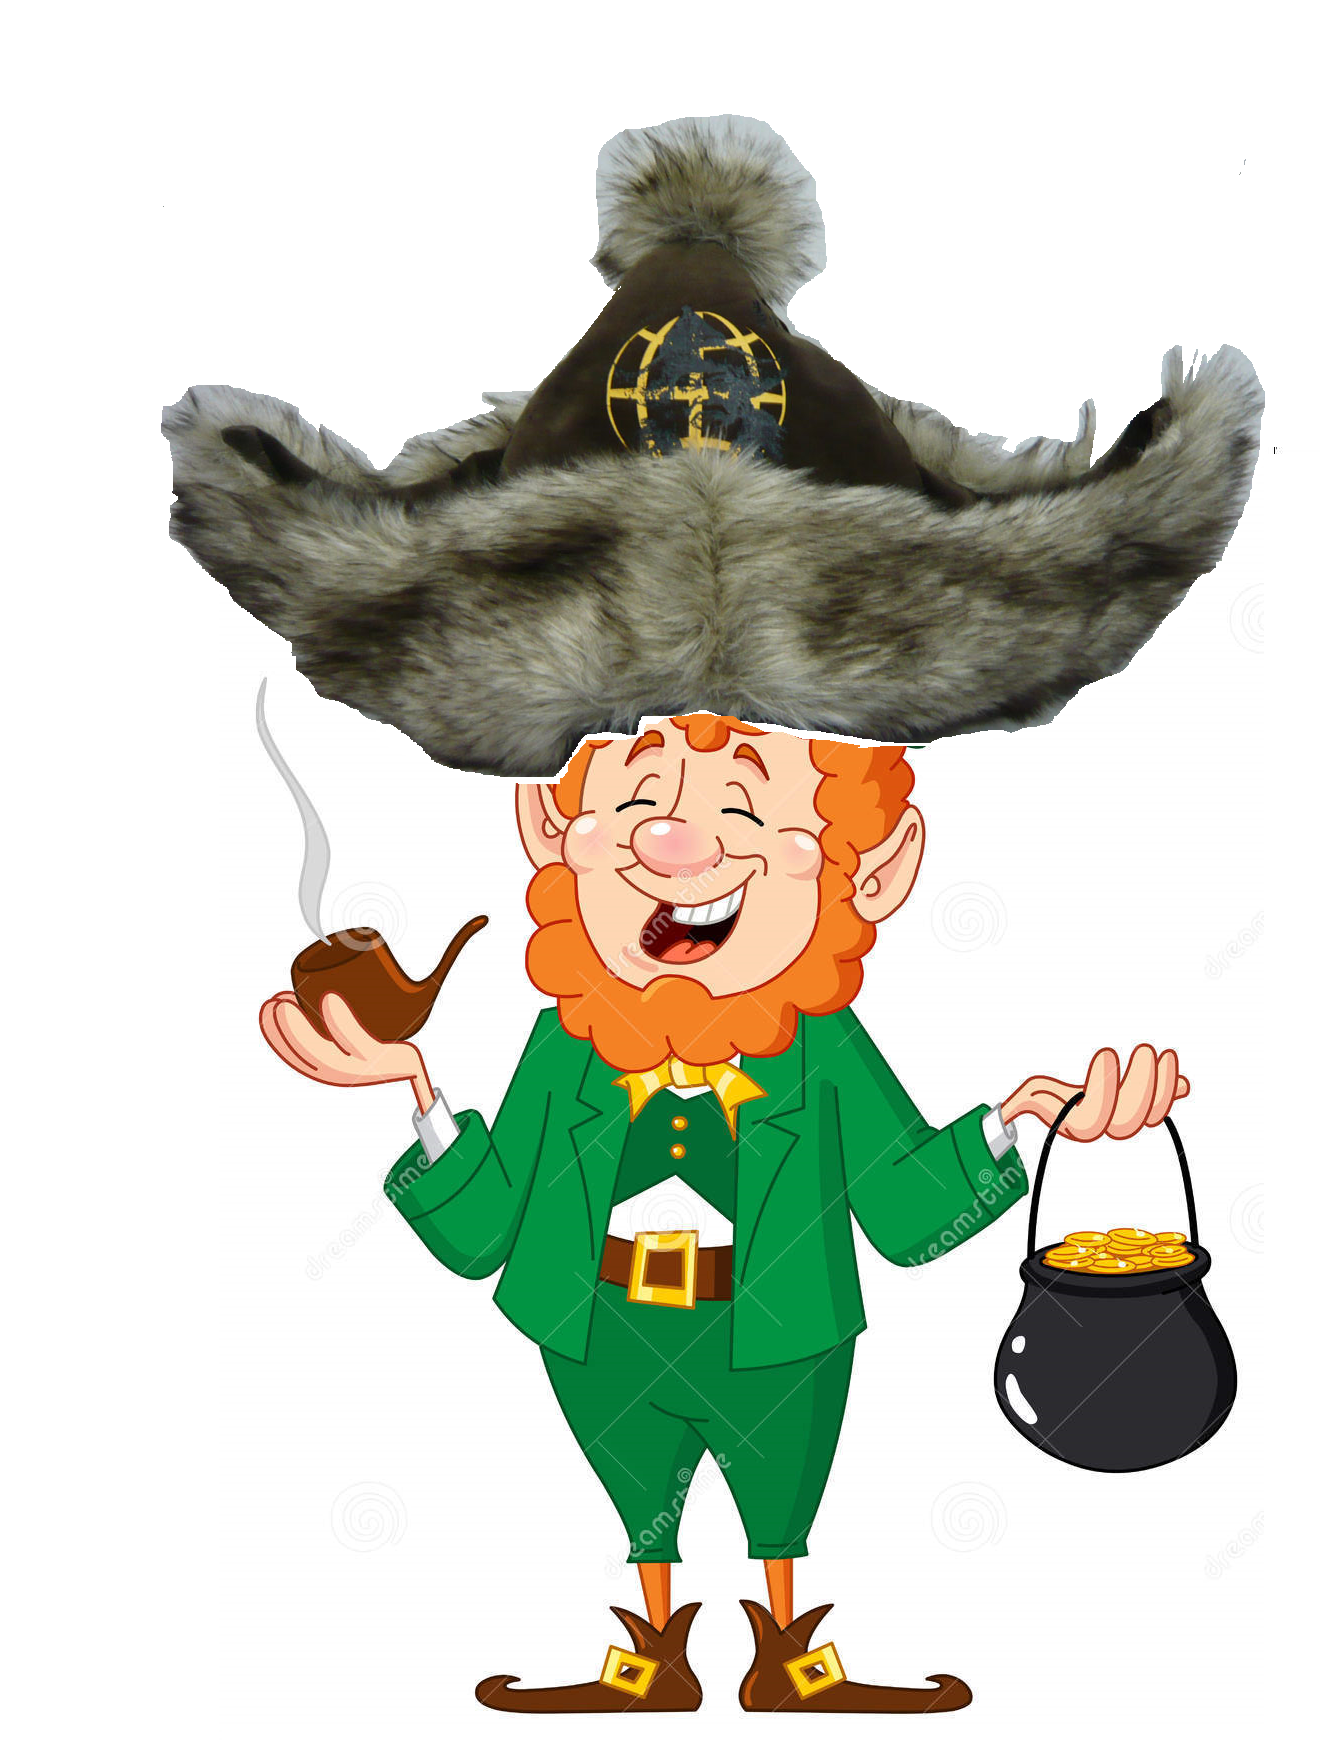 The lesser known Leprekhan. Awww yiss, the stupid result of my sleepy mind, enjoy, stare or whatever. Also, sorry about the lack of transparency usage, or cente